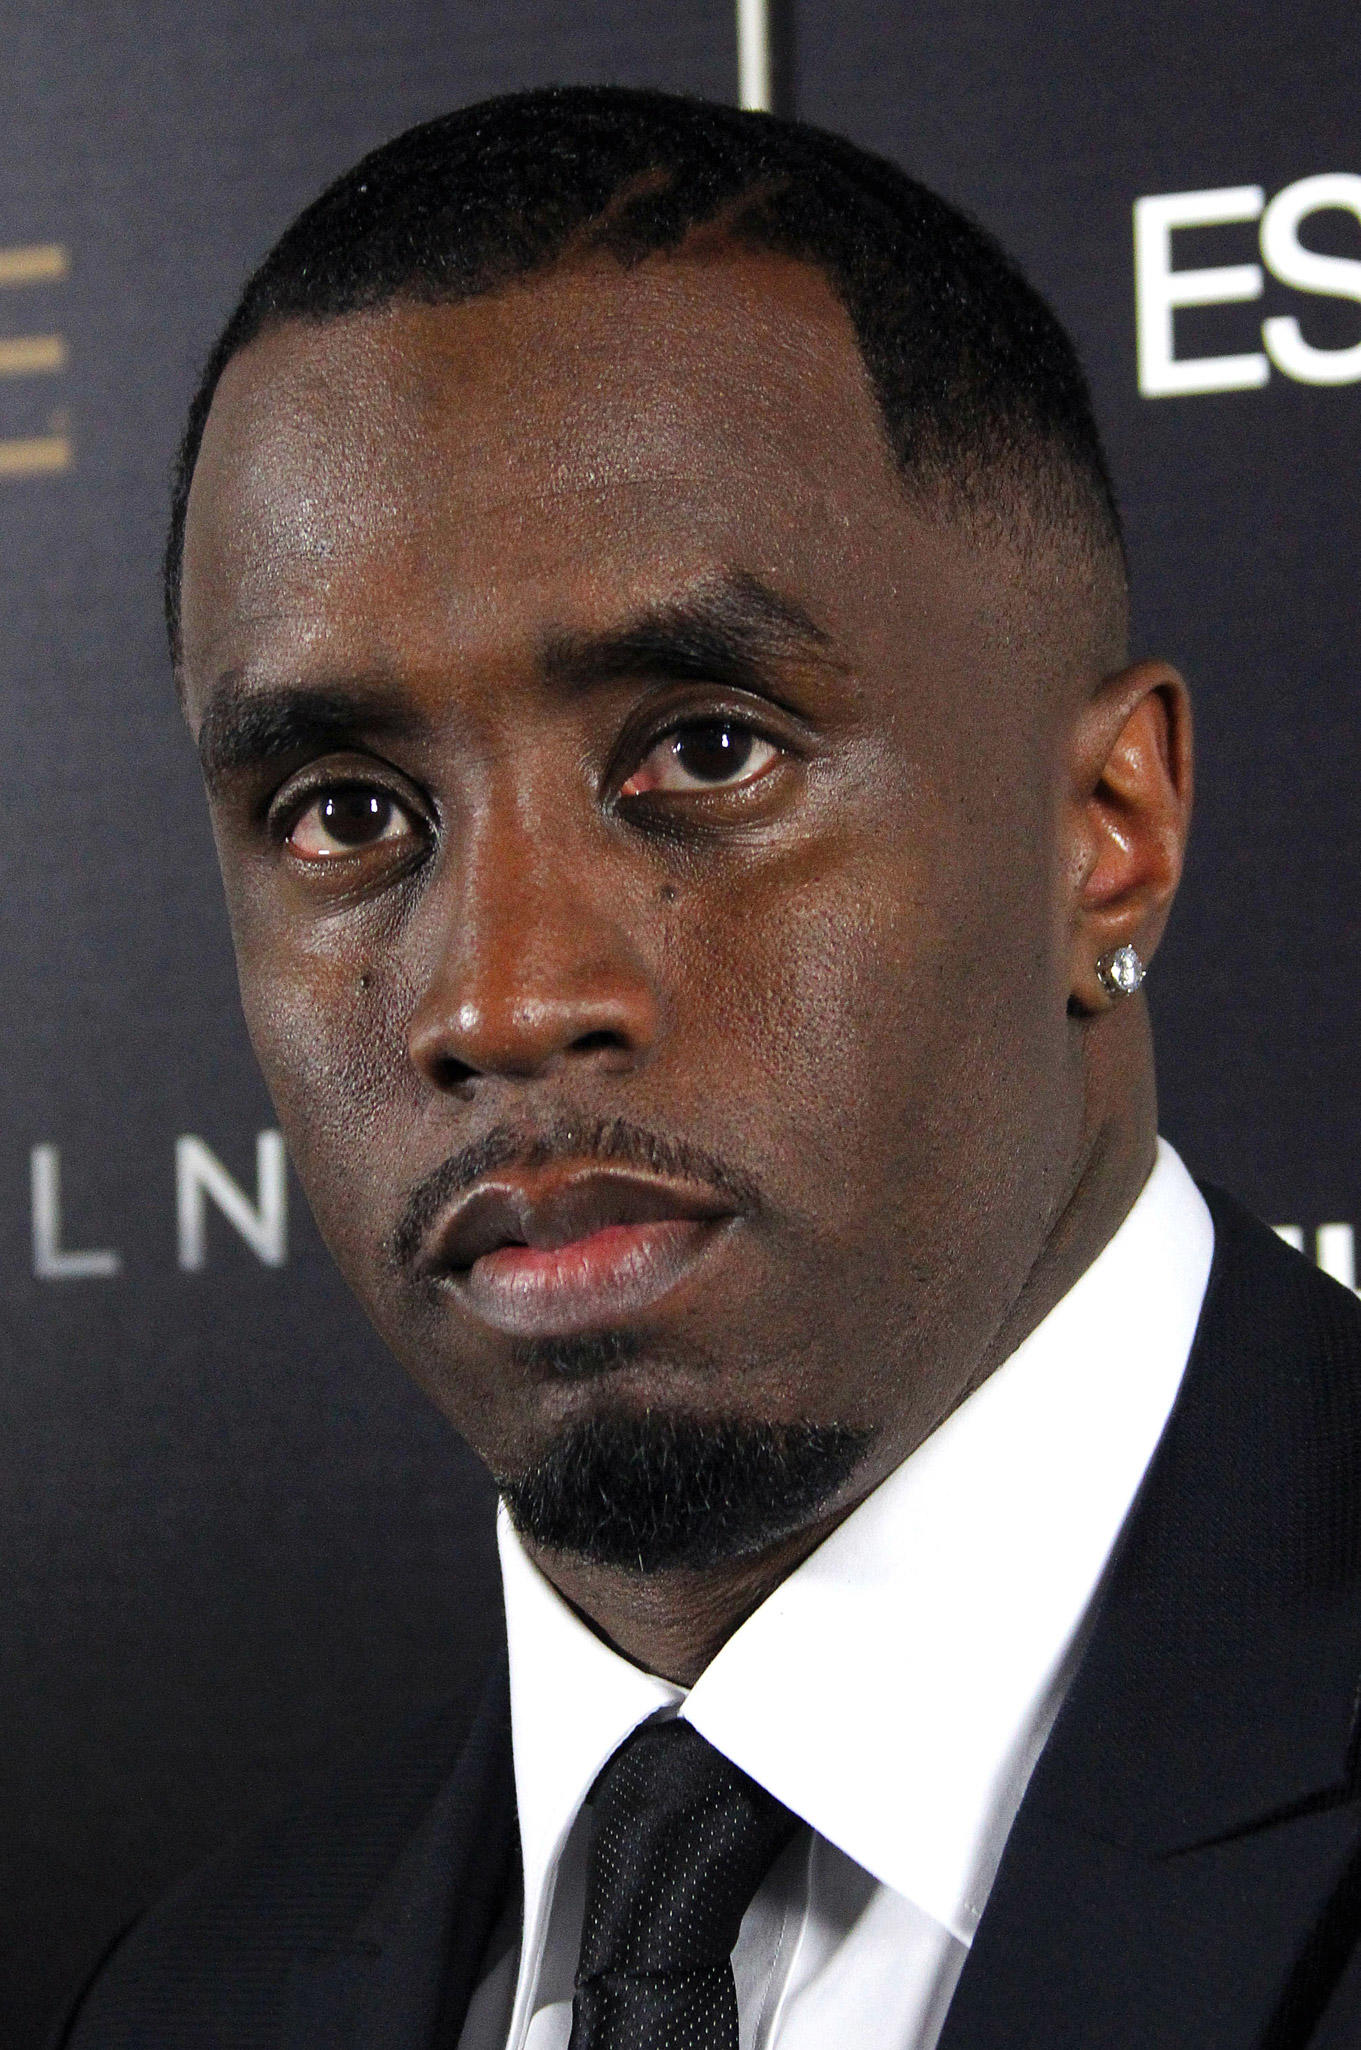 Sean Combs at Essence 'Black Women in Music' event at the Playhouse Hollywood in Los Angeles, CA.